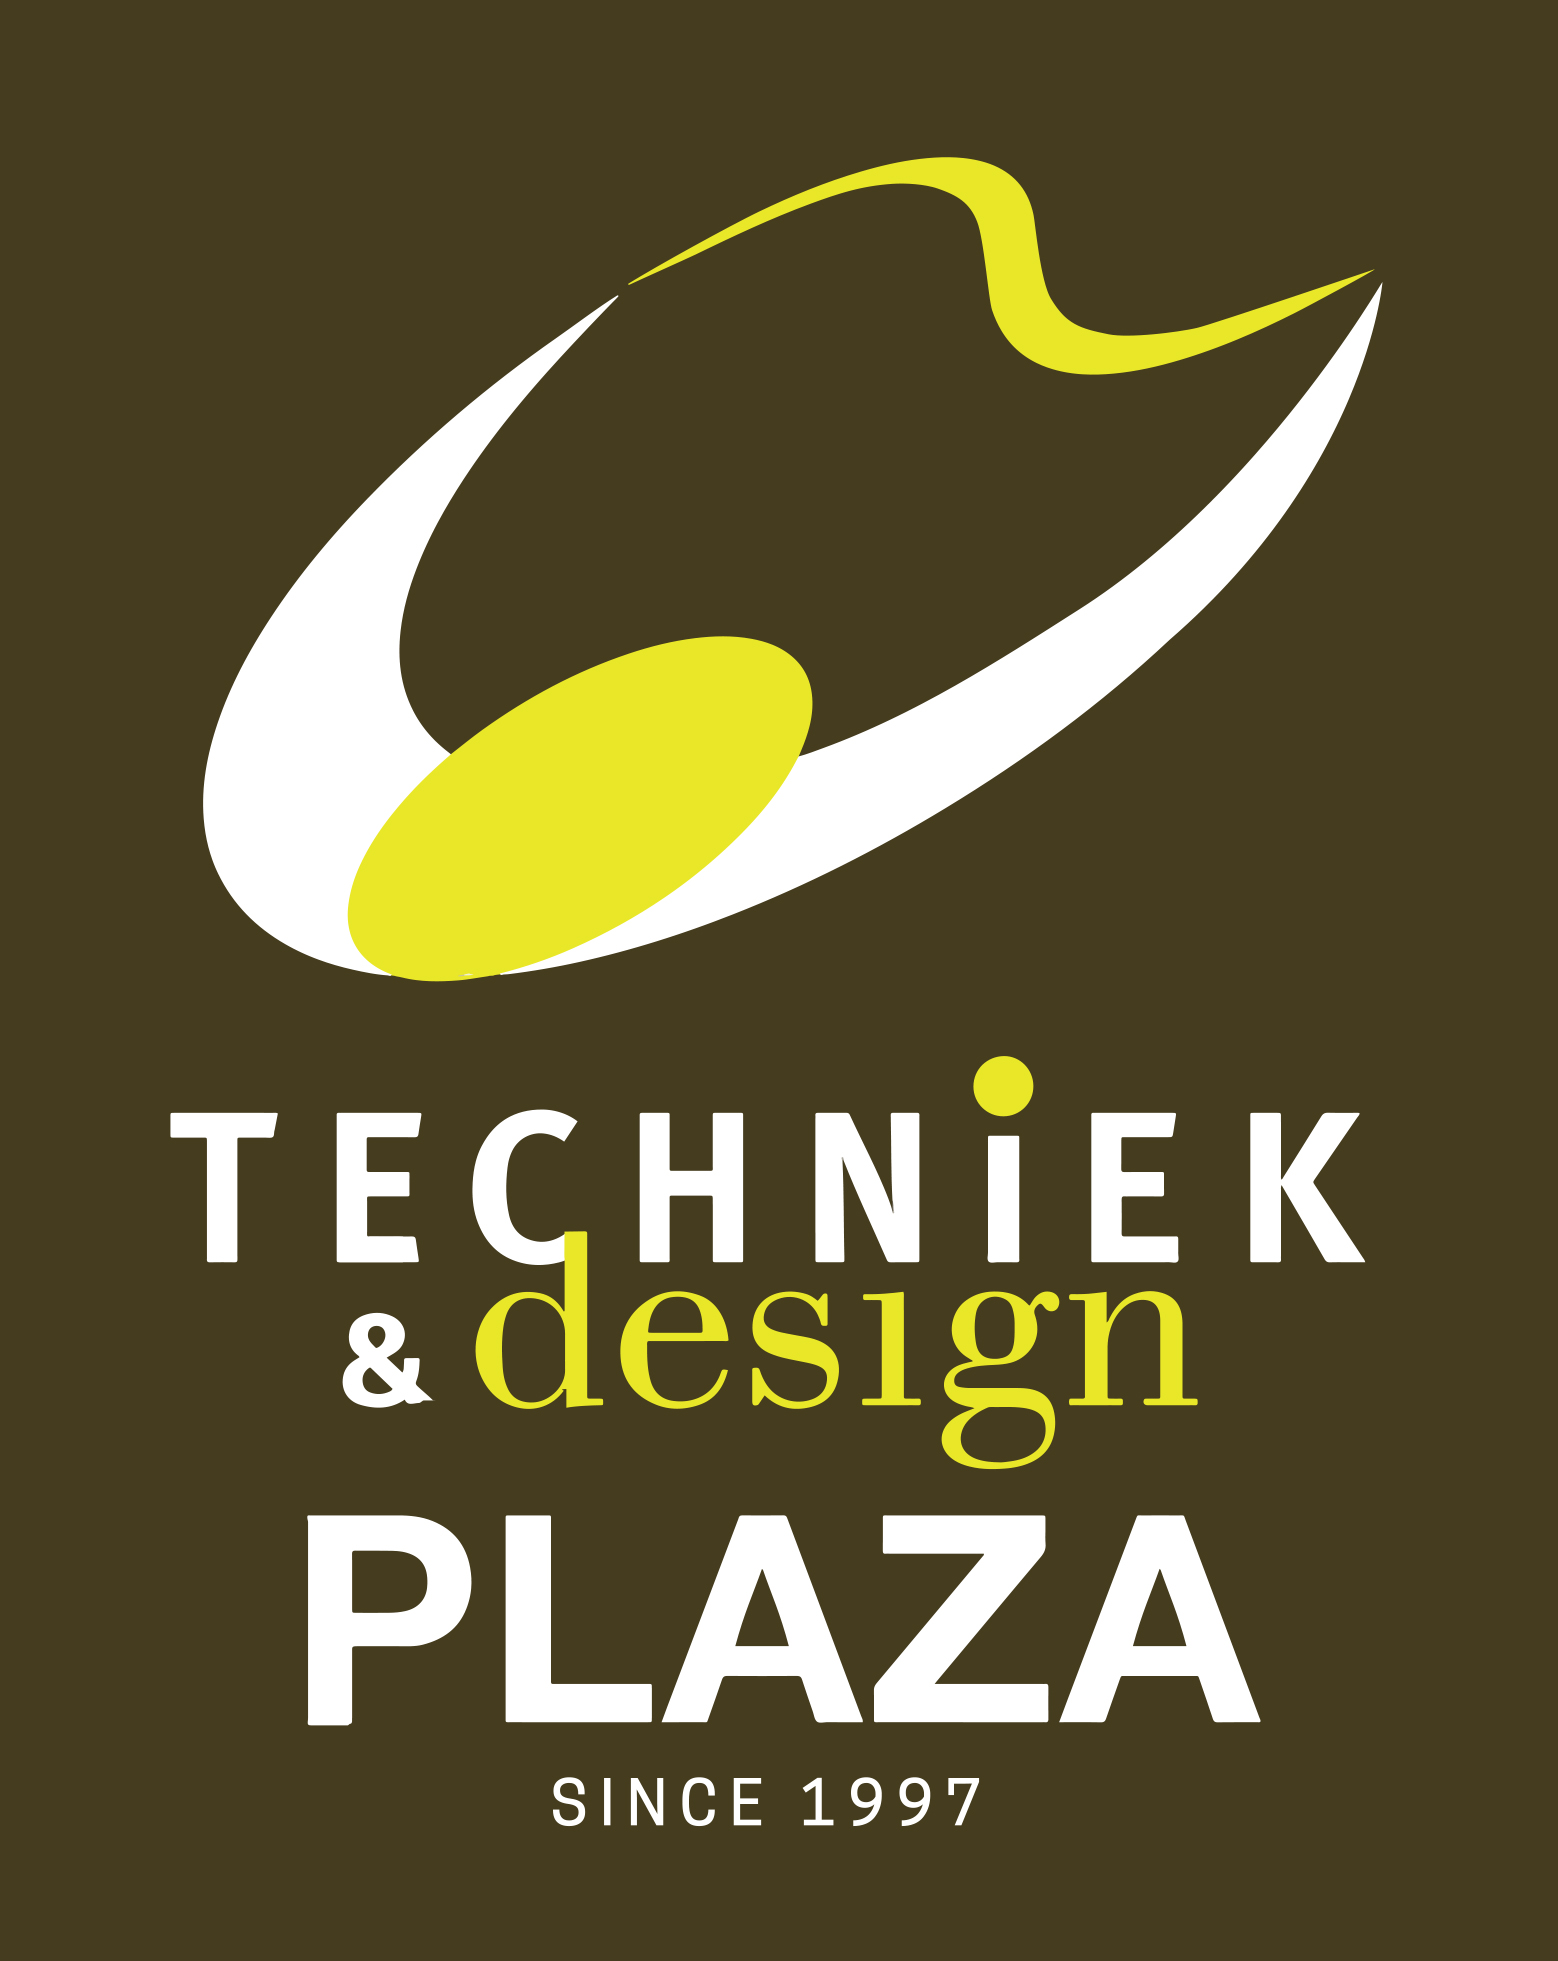 Techneik & design PLAZA logo.